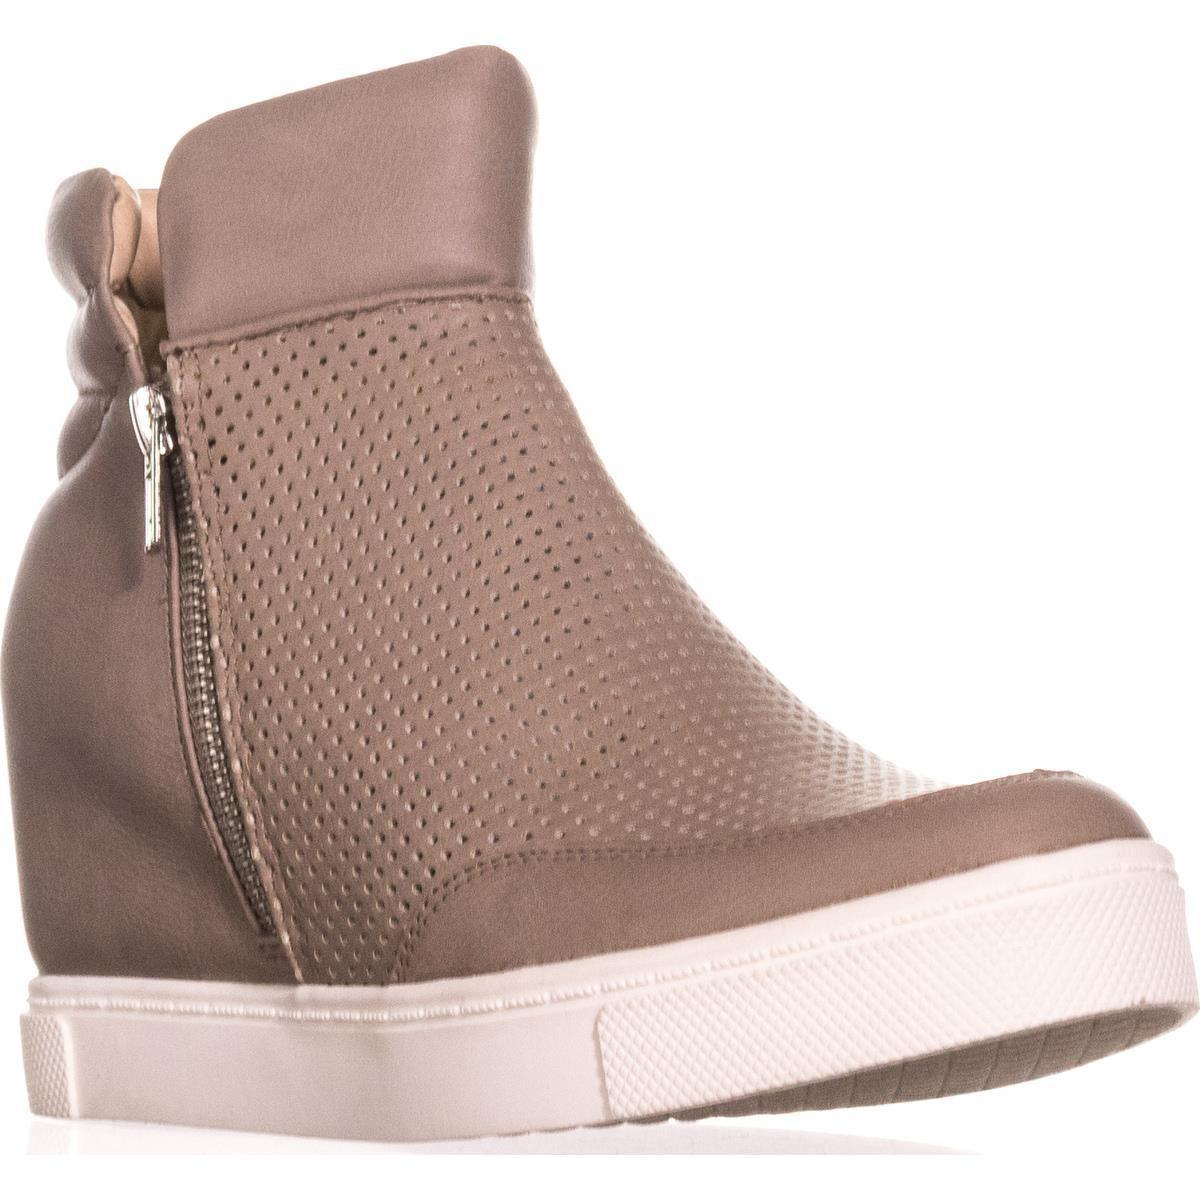 e8341872efd Steve Madden Linqsp Perforated Wedge Fashion Sneakers in Gray - Lyst